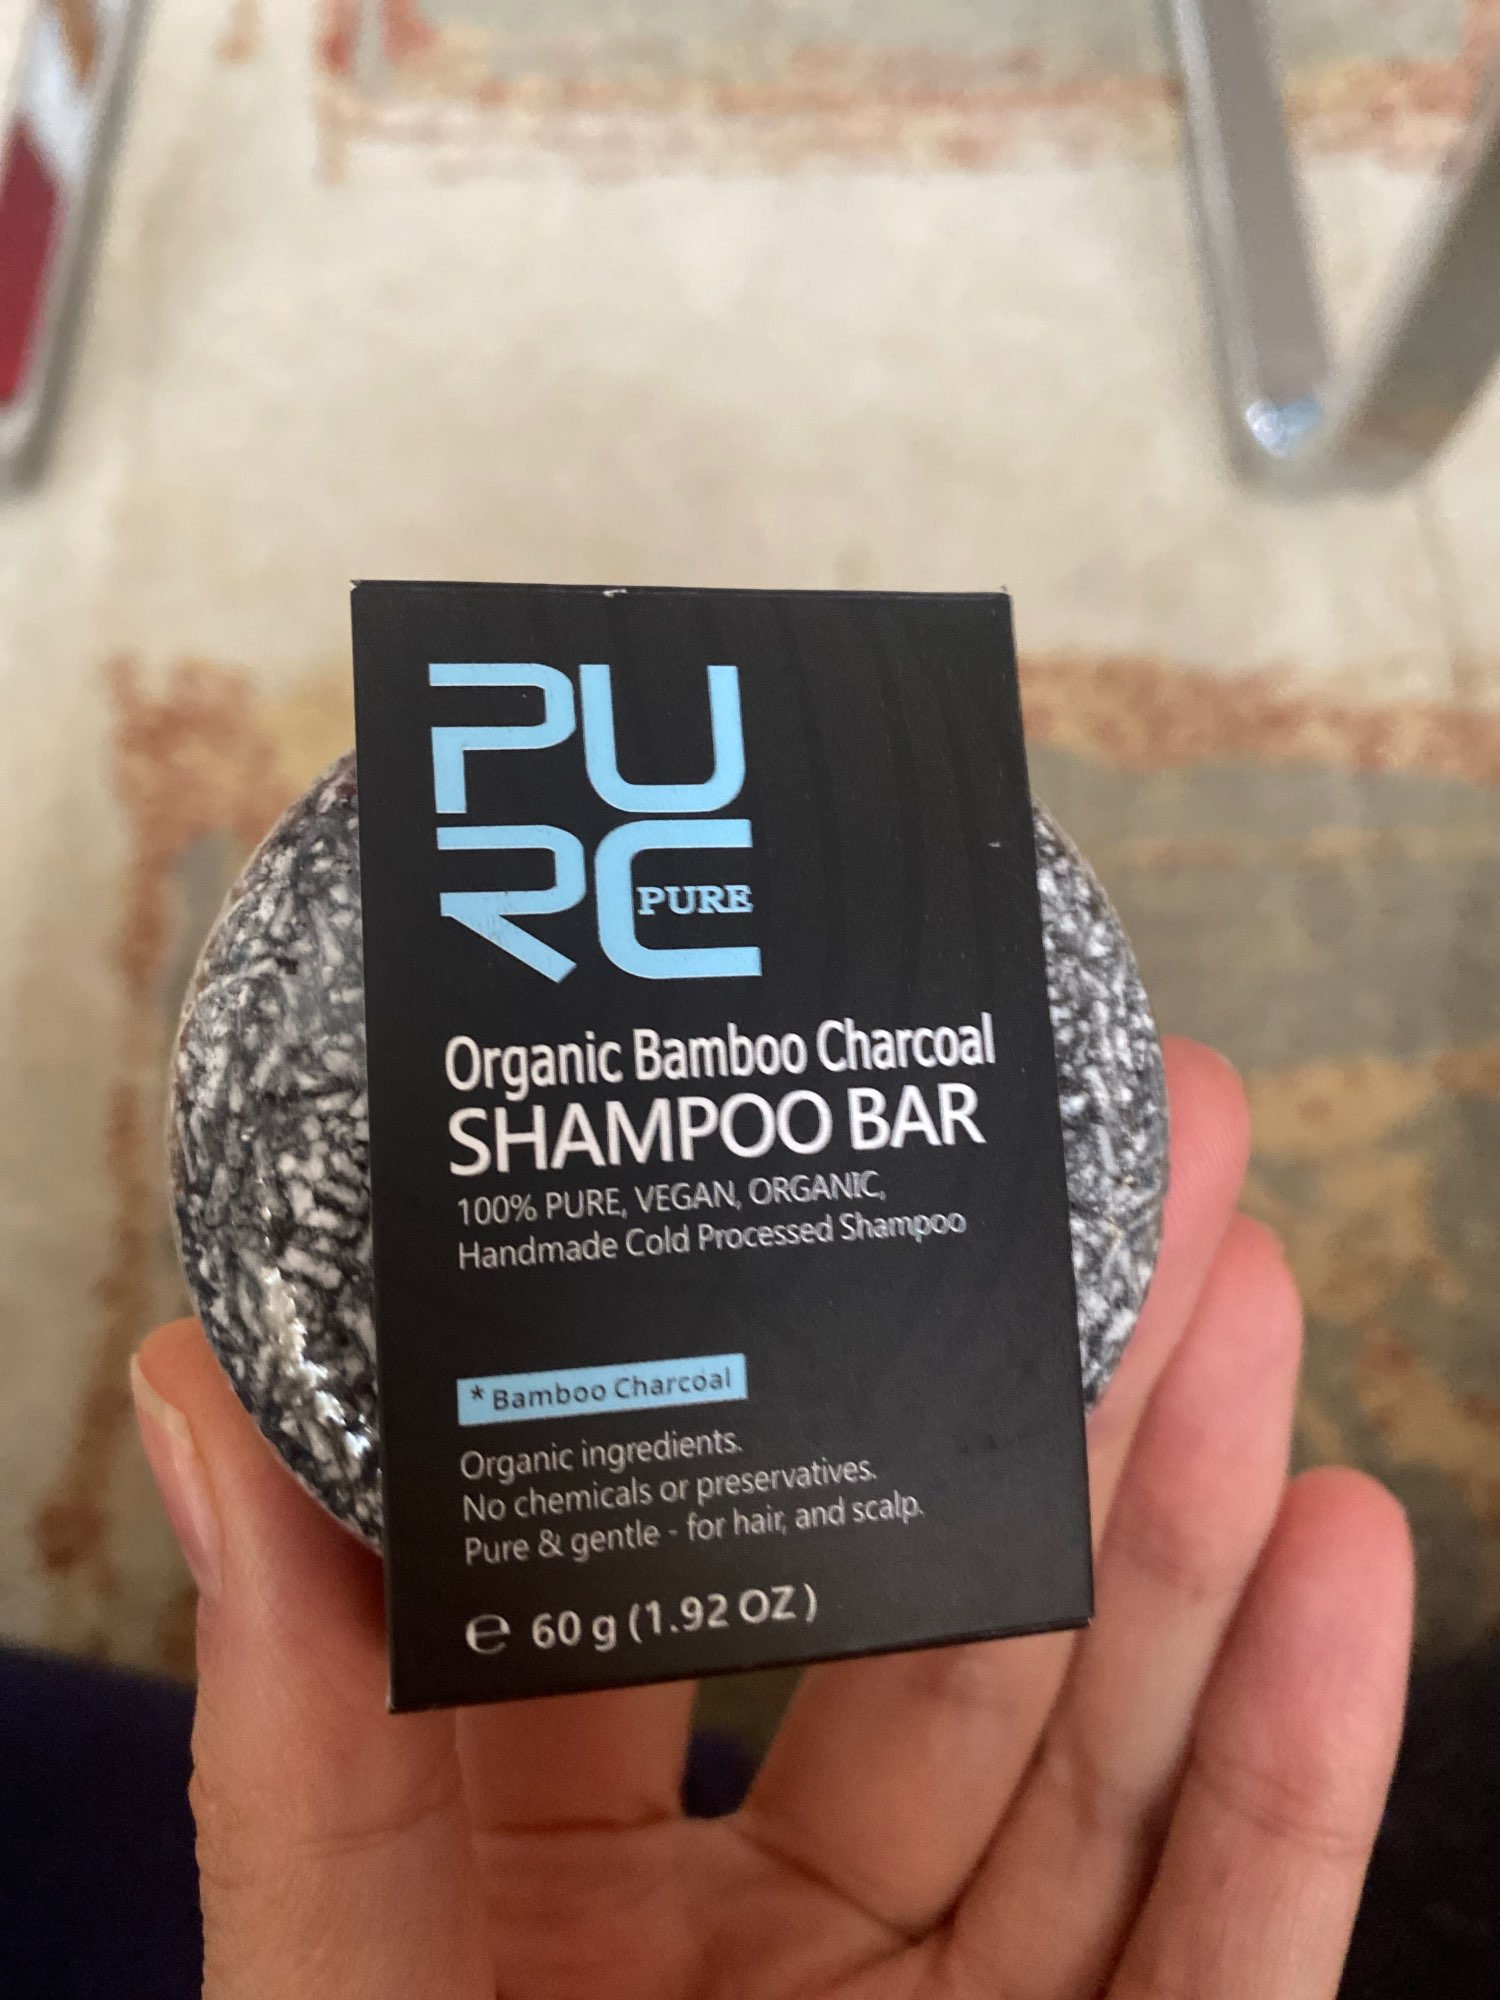 Gray and White Hair Color Dye Treatment - Clean Detox Soap Bar and Hair Shampoo photo review